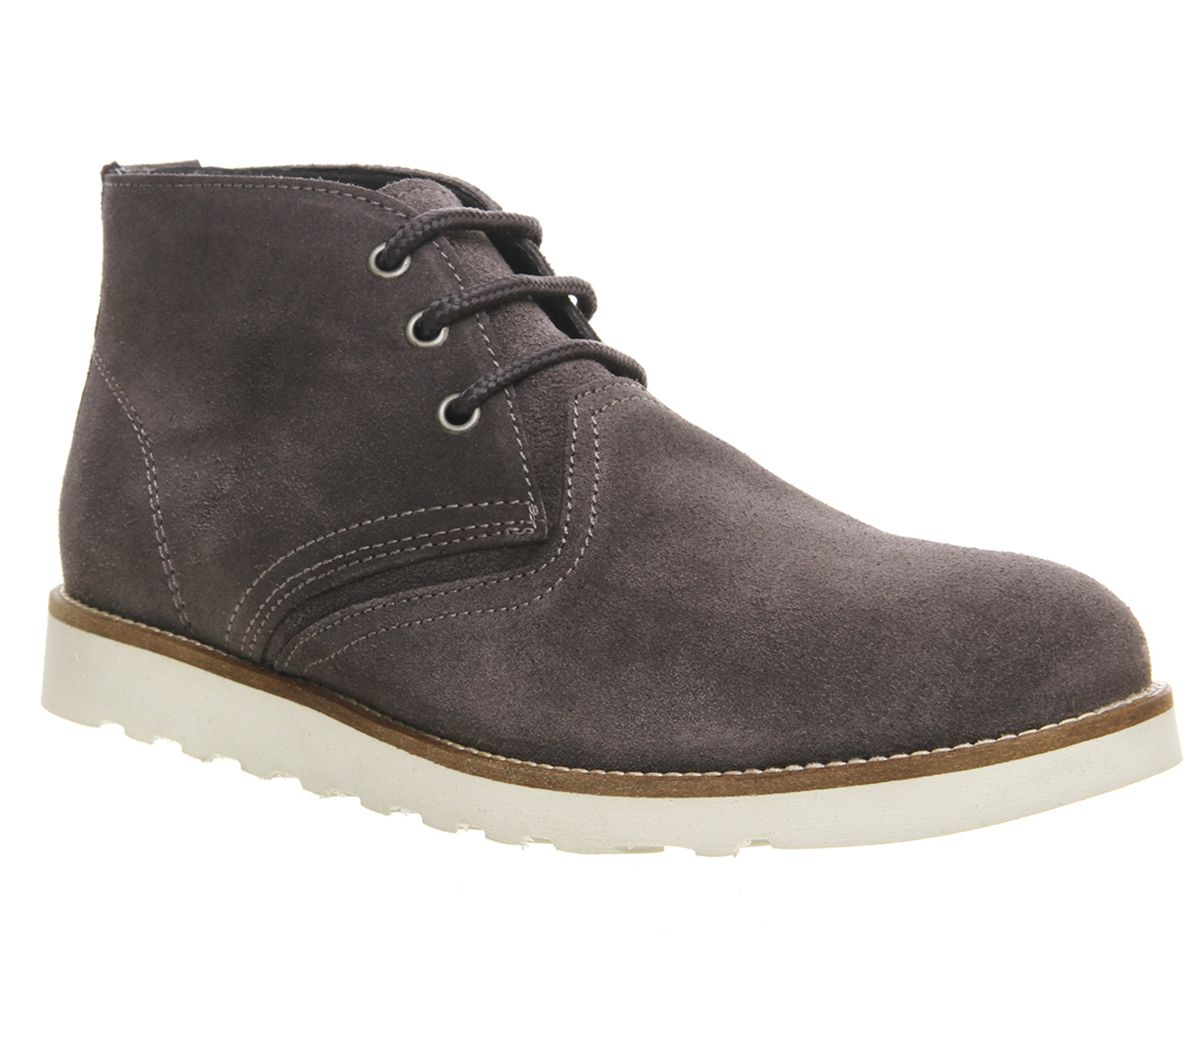 mens ask the missus grey suede lace up ankle boots uk size